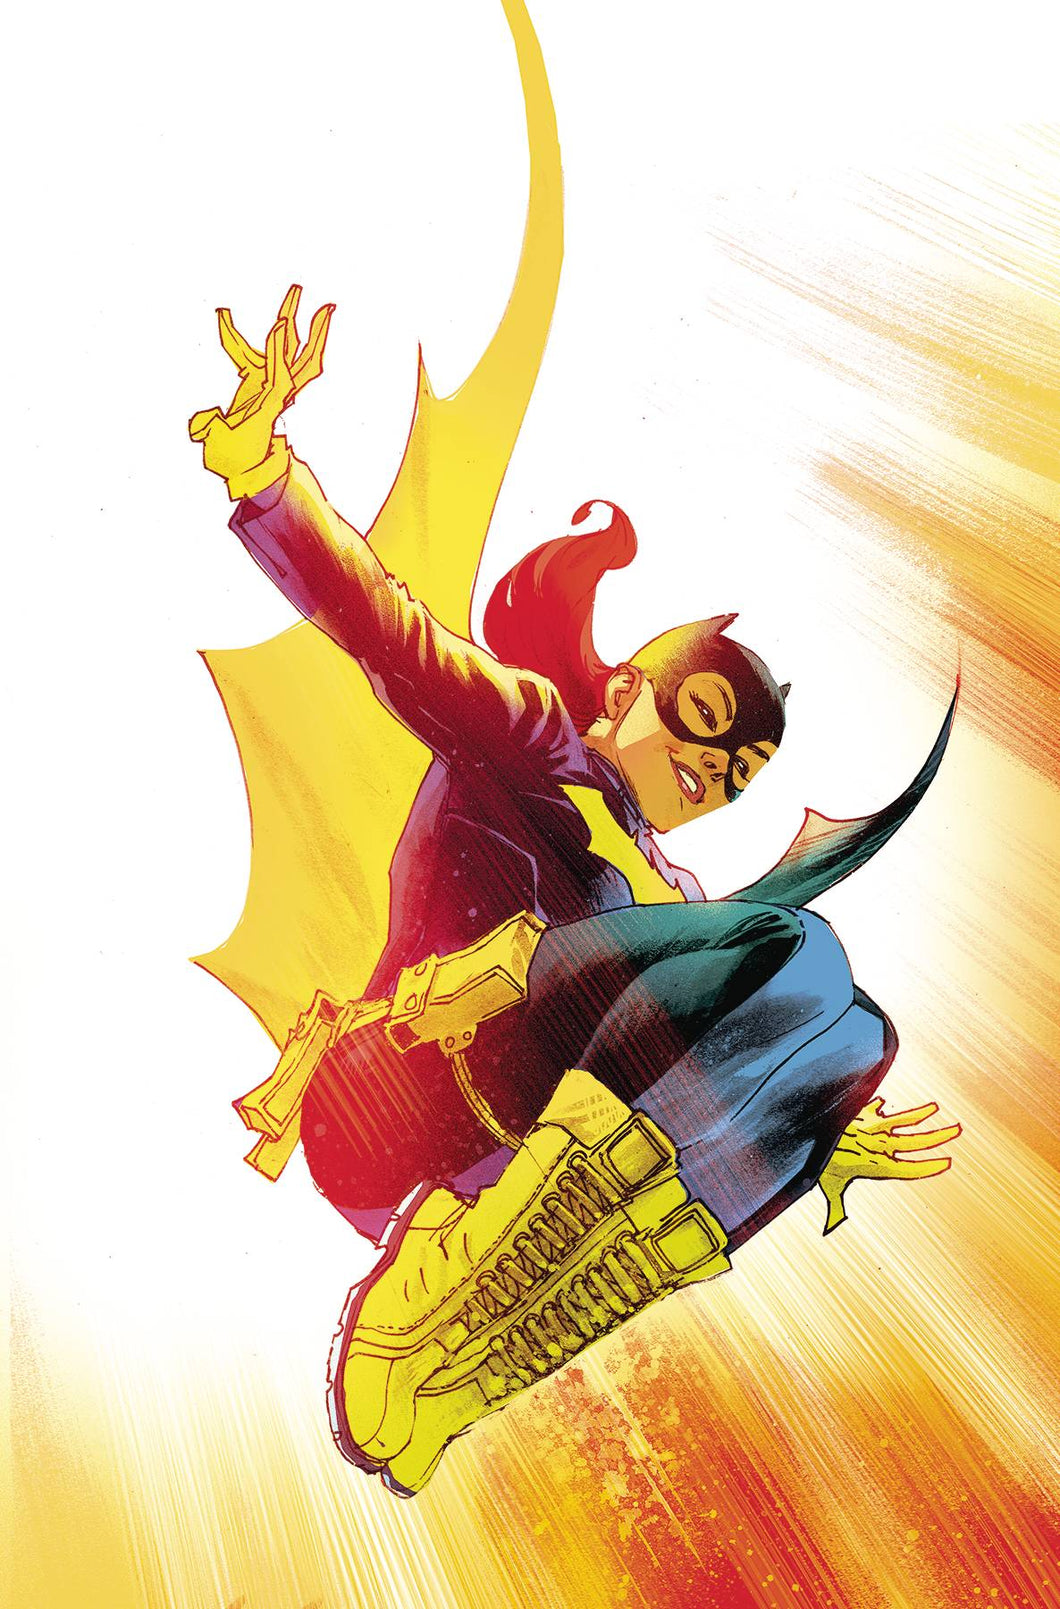 BATGIRL #25 FOC 07/02 (ADVANCE ORDER)